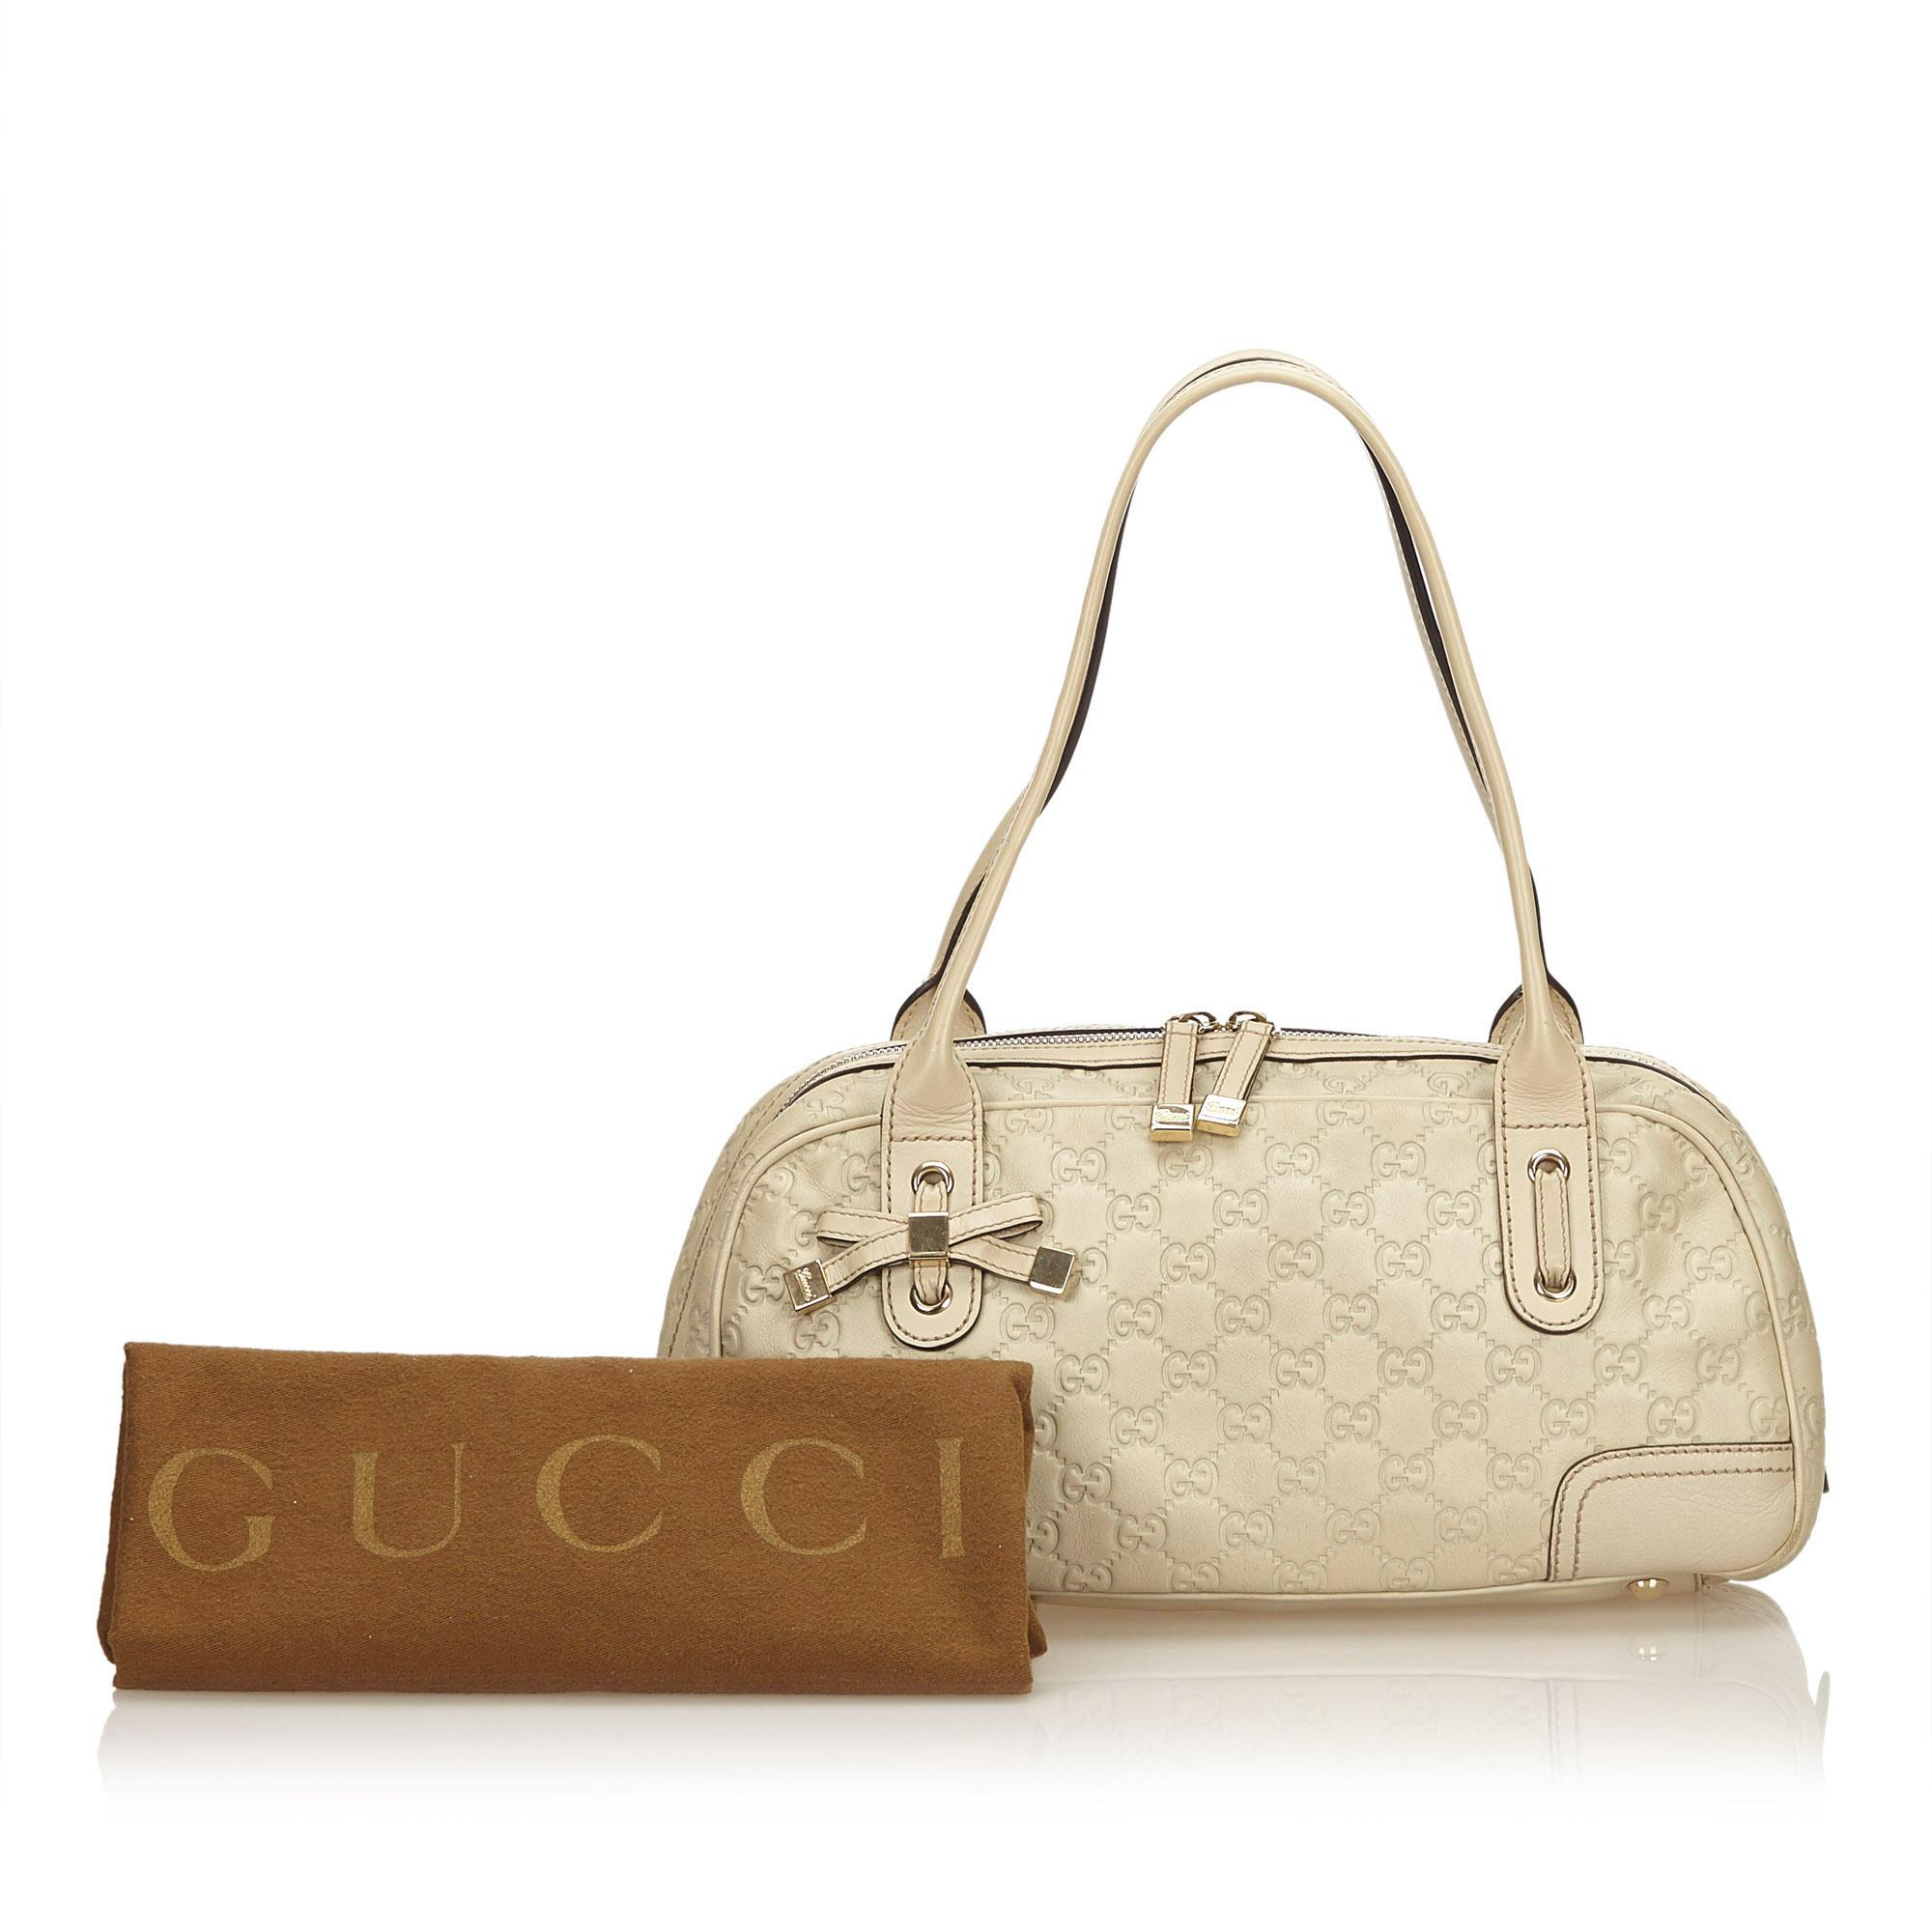 71ef7fe18 Gucci White Guccissima Leather Princy Shoulder Bag For Sale at 1stdibs